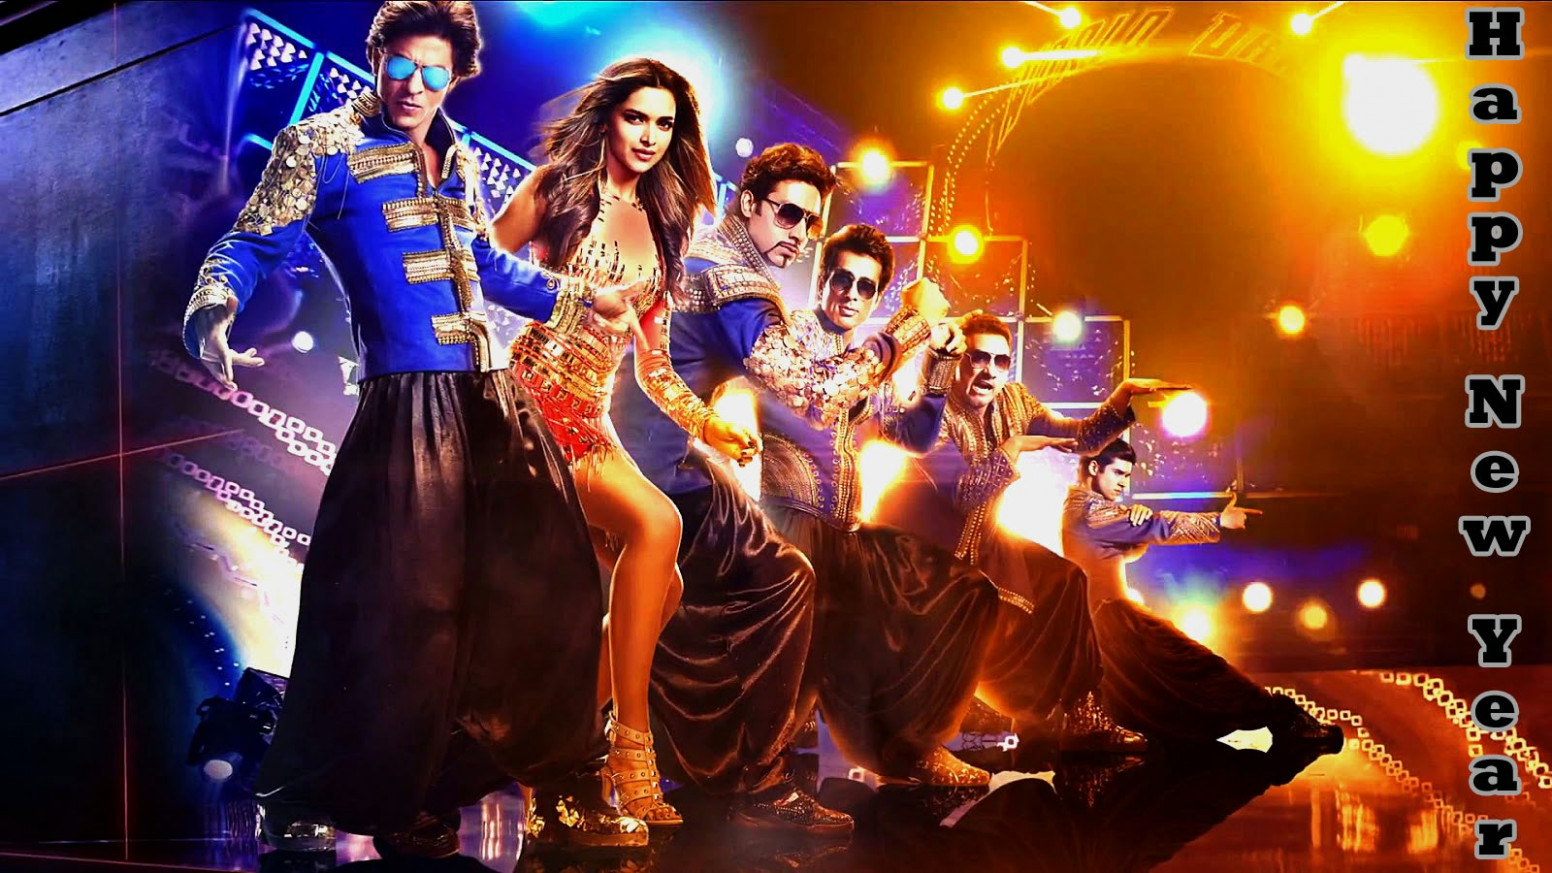 Wallpaper's Station: Happy New Year Bollywood Movie 2014